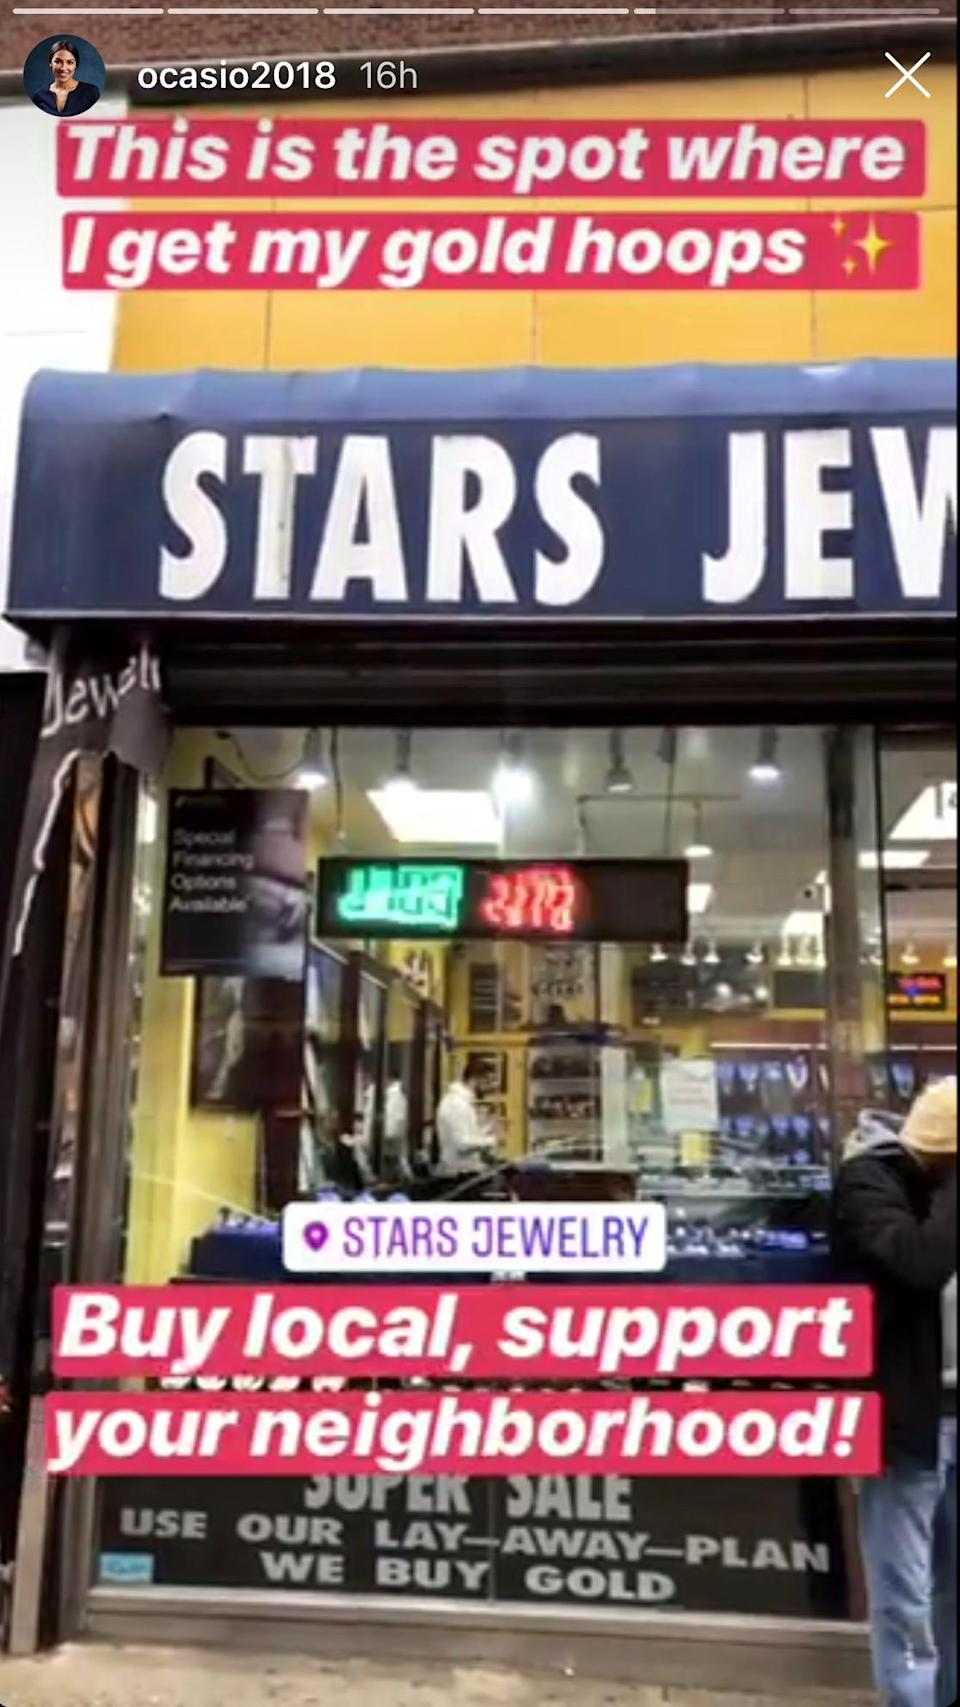 Rep. Ocasio-Cortez posted a video showing where she bought her gold hoops in the Bronx. (Photo: Alexandria Ocasio-Cortez via Instagram)